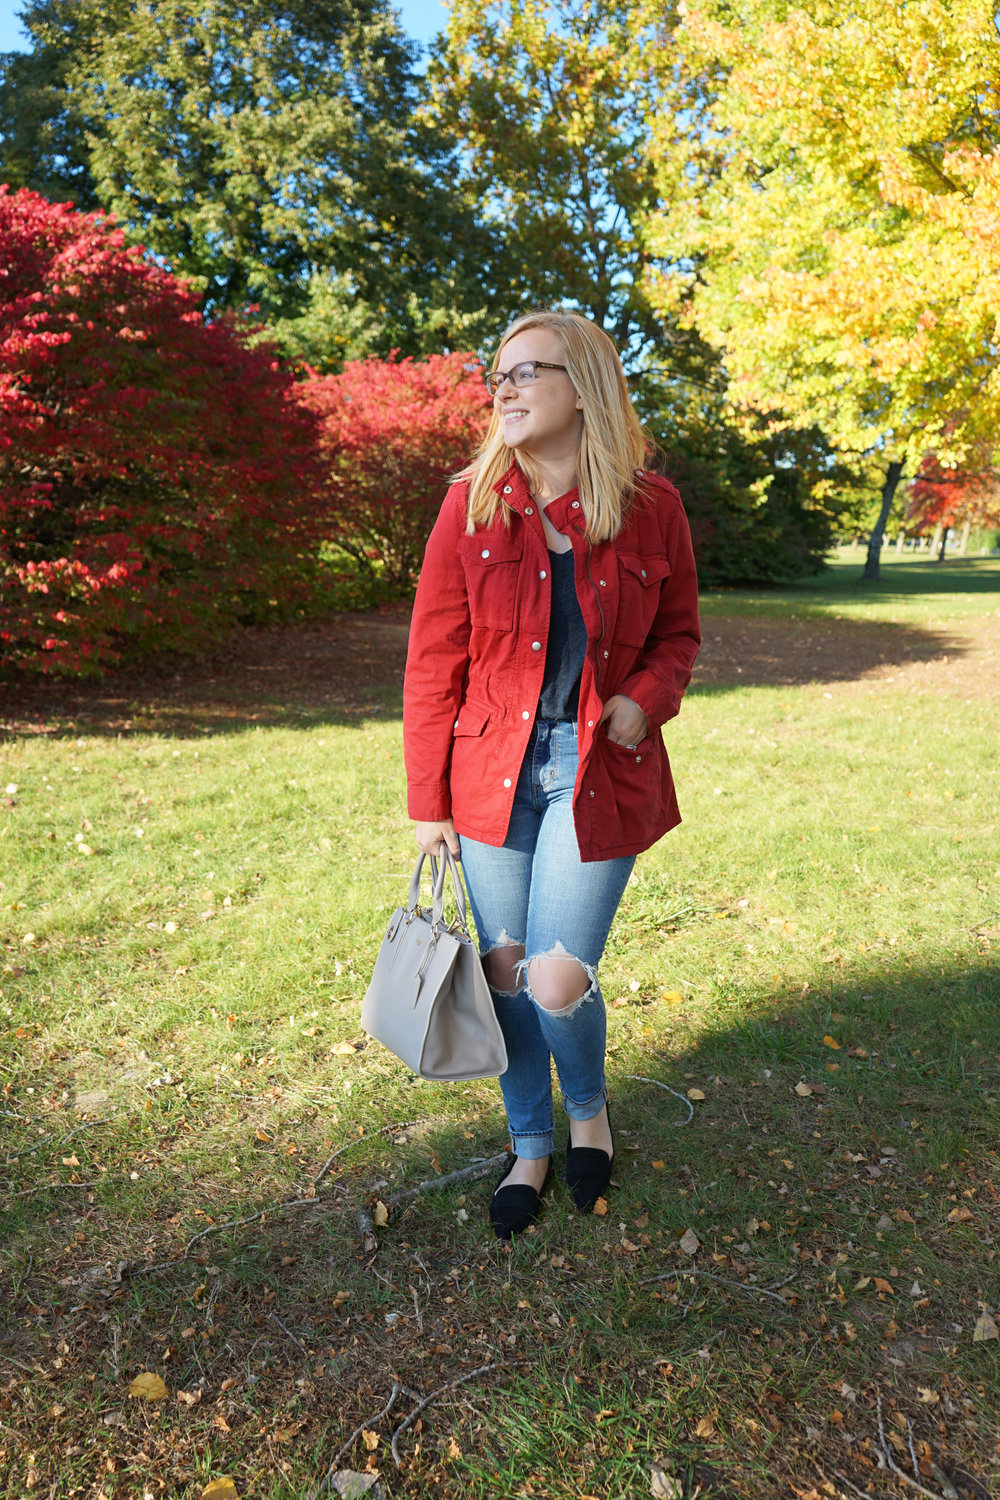 Gap classic utility jacket, Madewell whisper cotton v-neck tee, Levi's 721 High Rise distressed skinny jeans, Schutz Elise flats, Coach purse - Maggie a la Mode